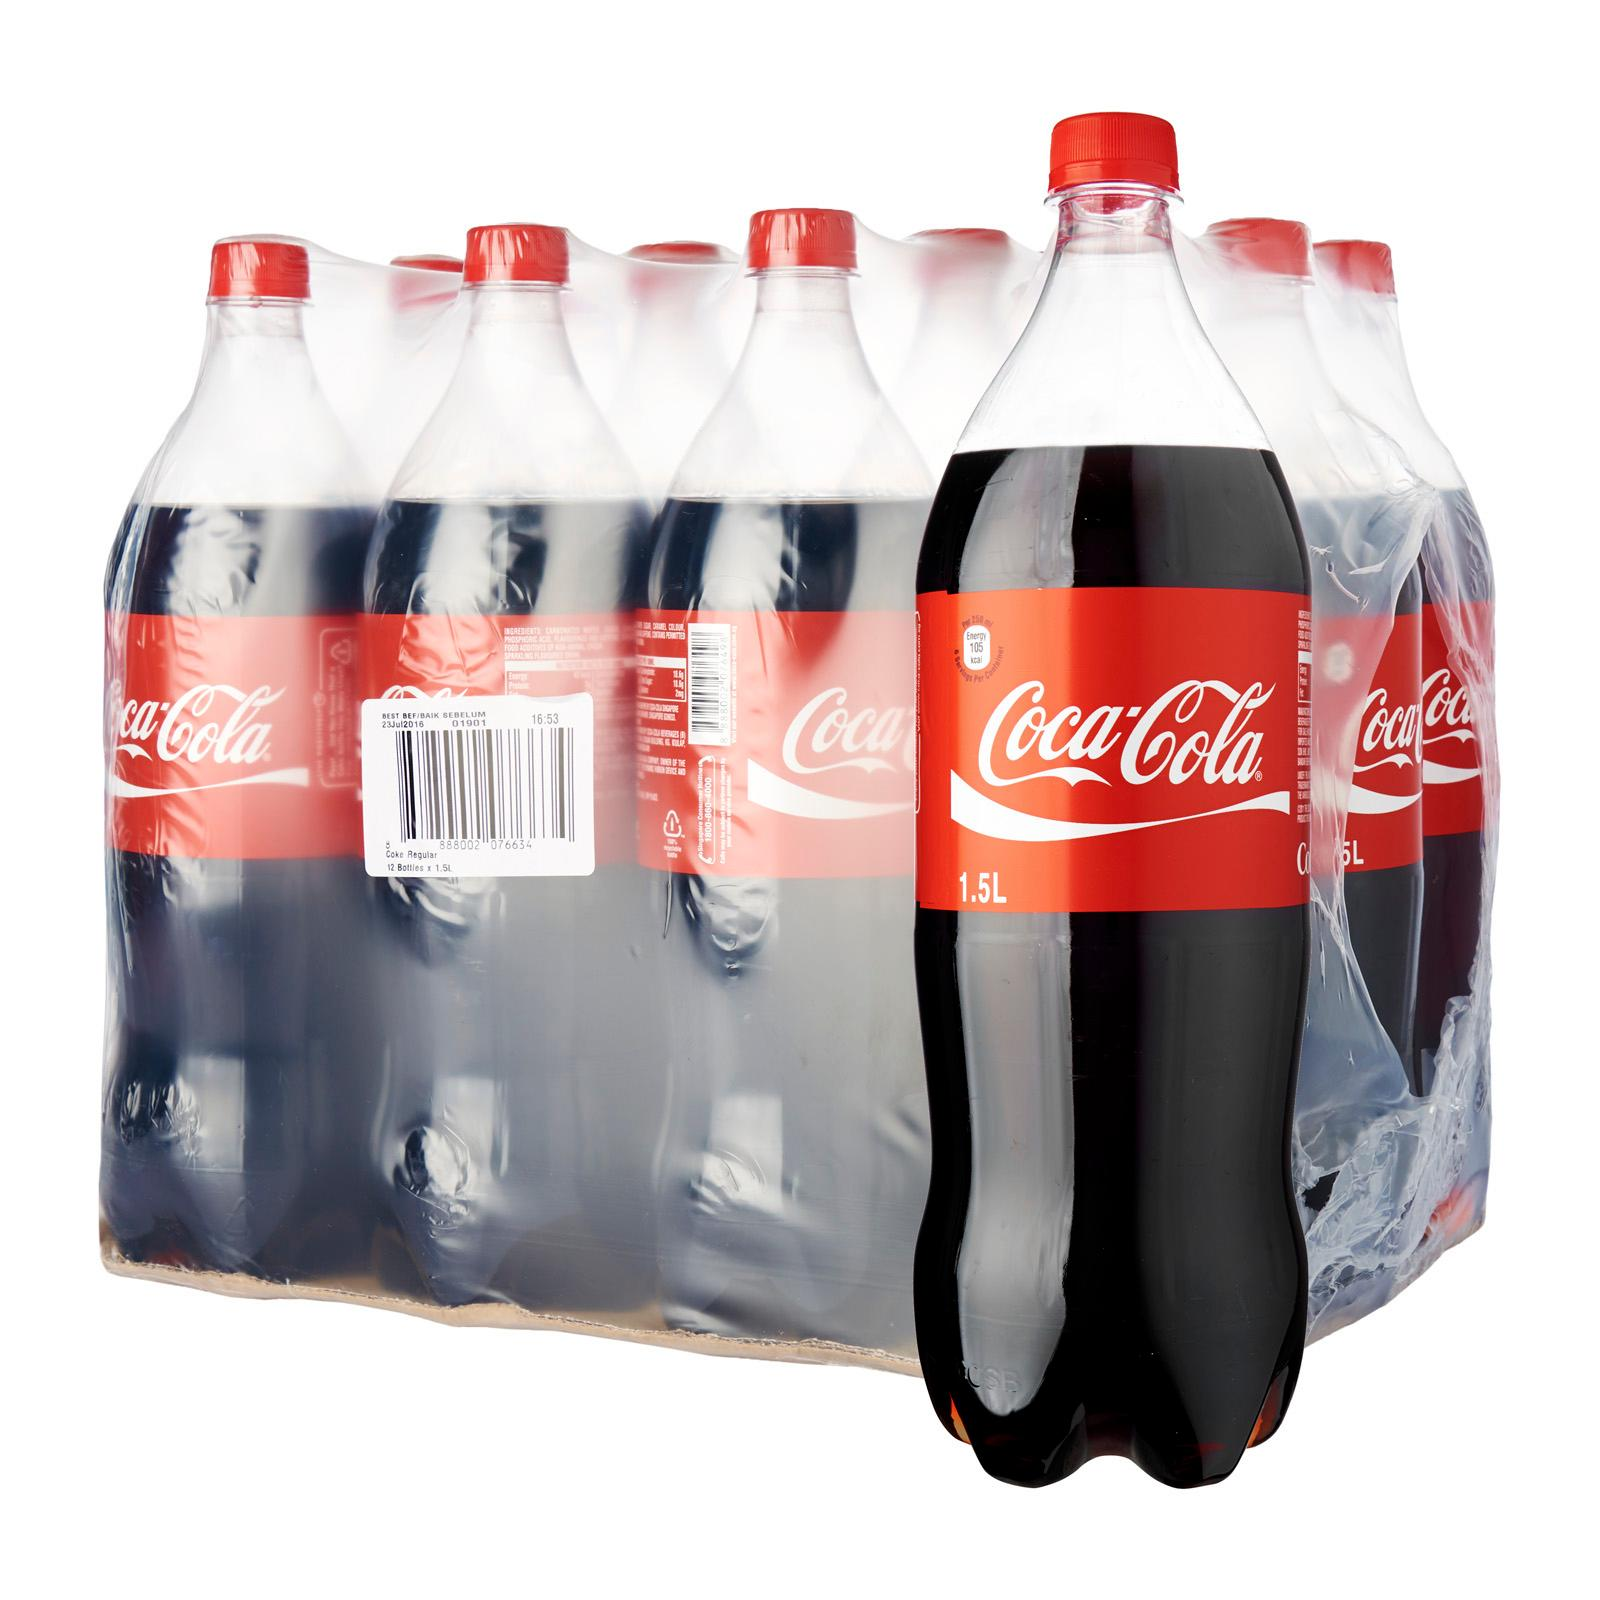 Coca-Cola Regular – Case 12 x 1.5 L